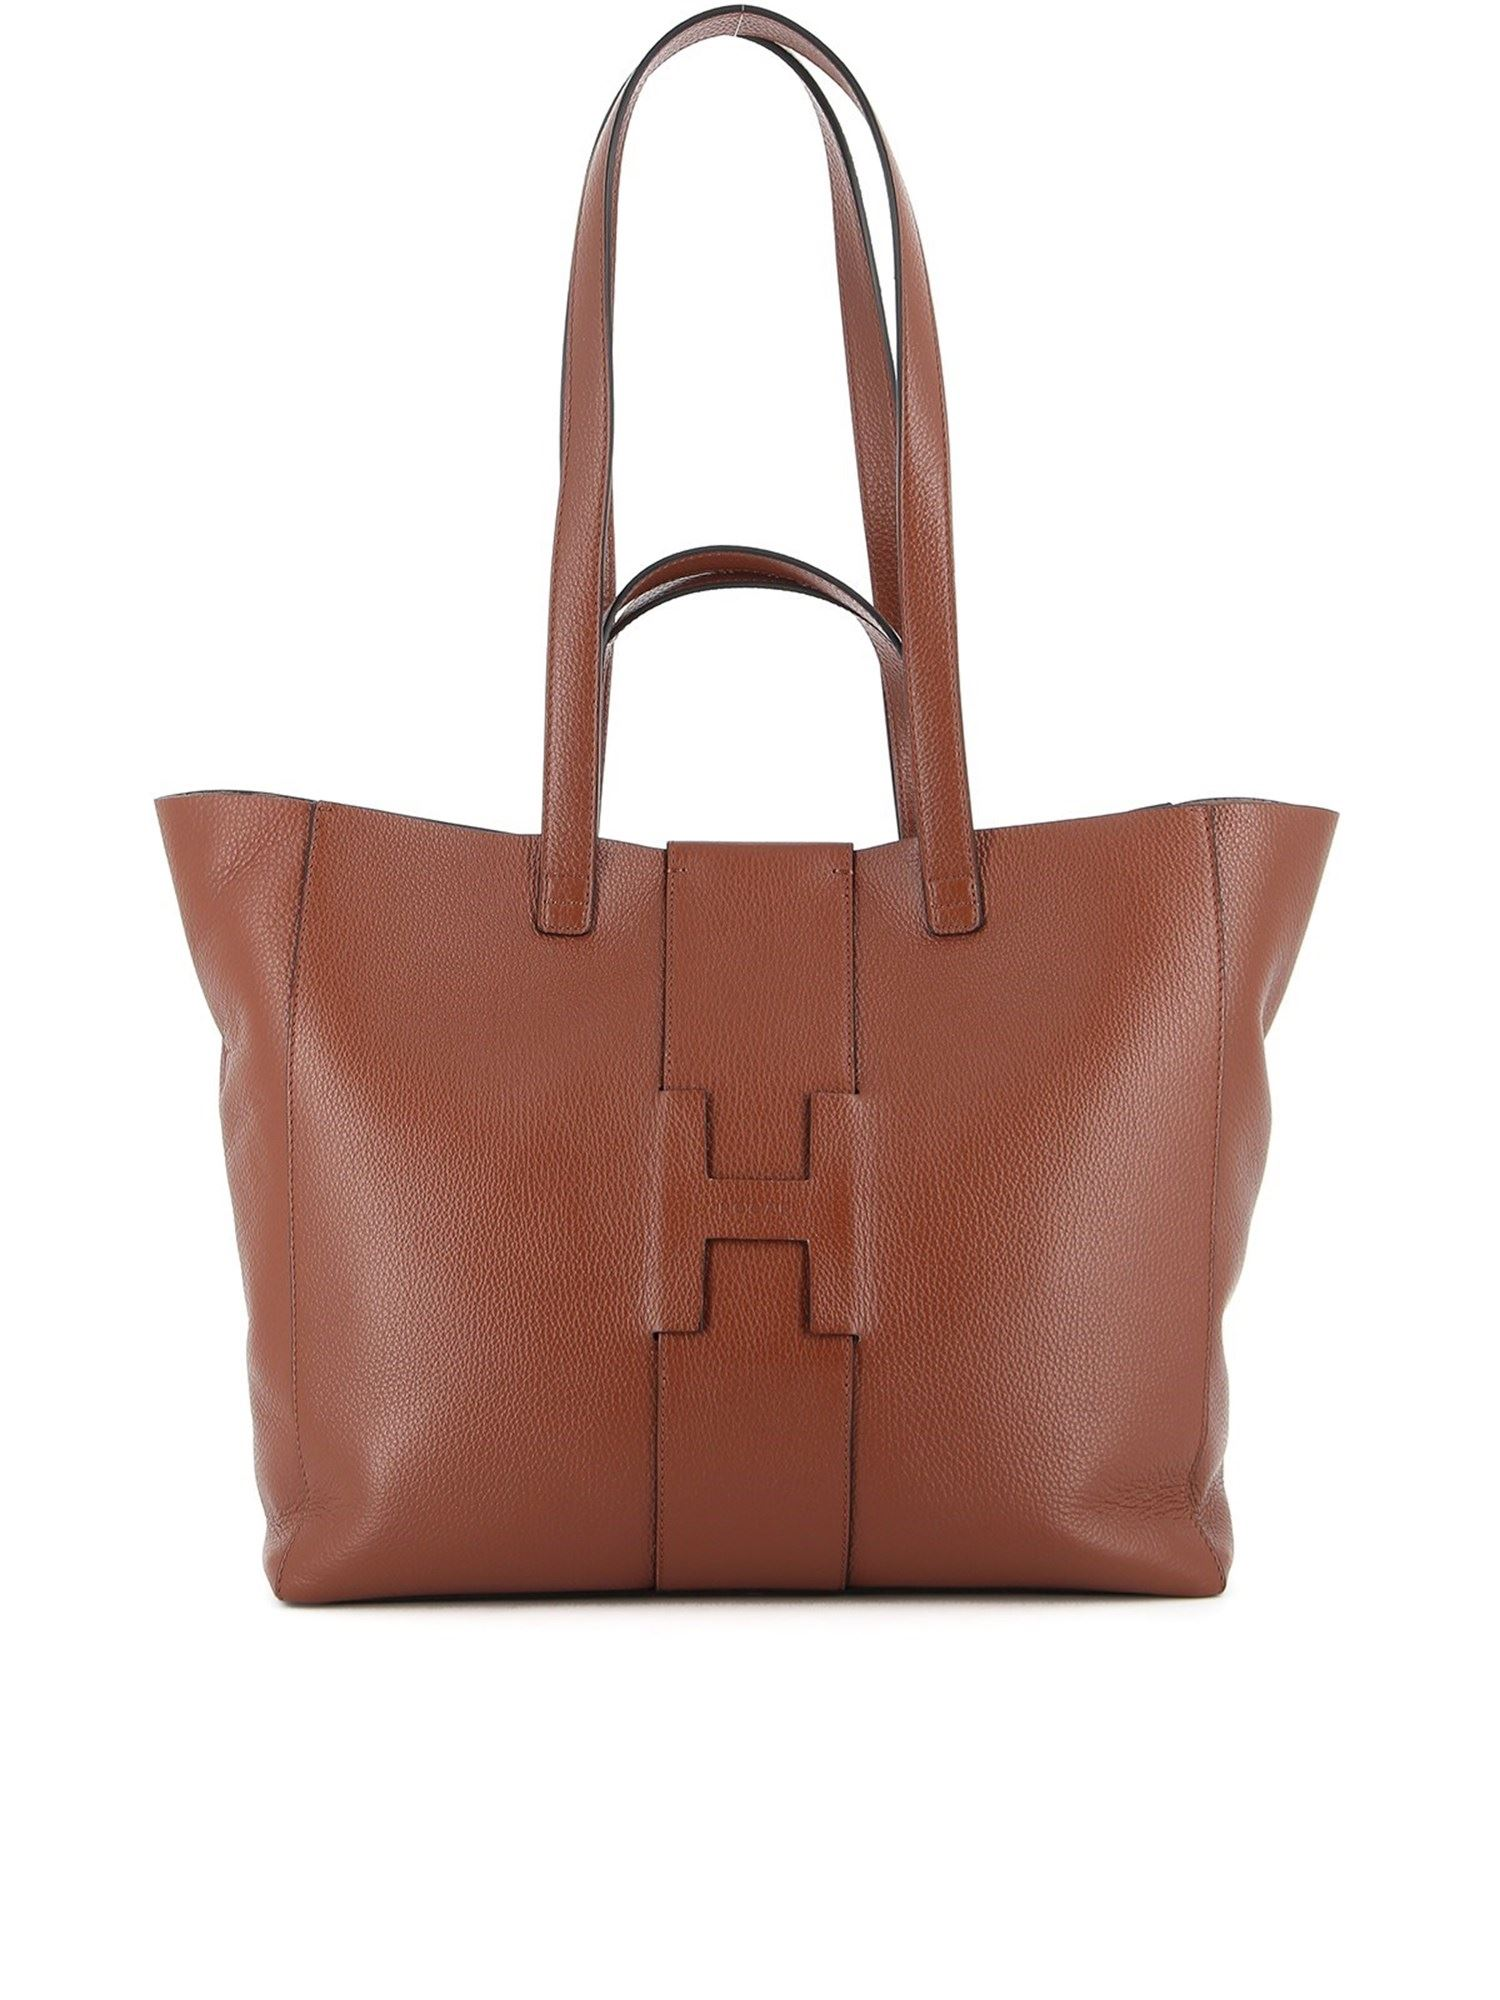 Hogan HAMMERED LEATHER TOTE BAG IN BROWN